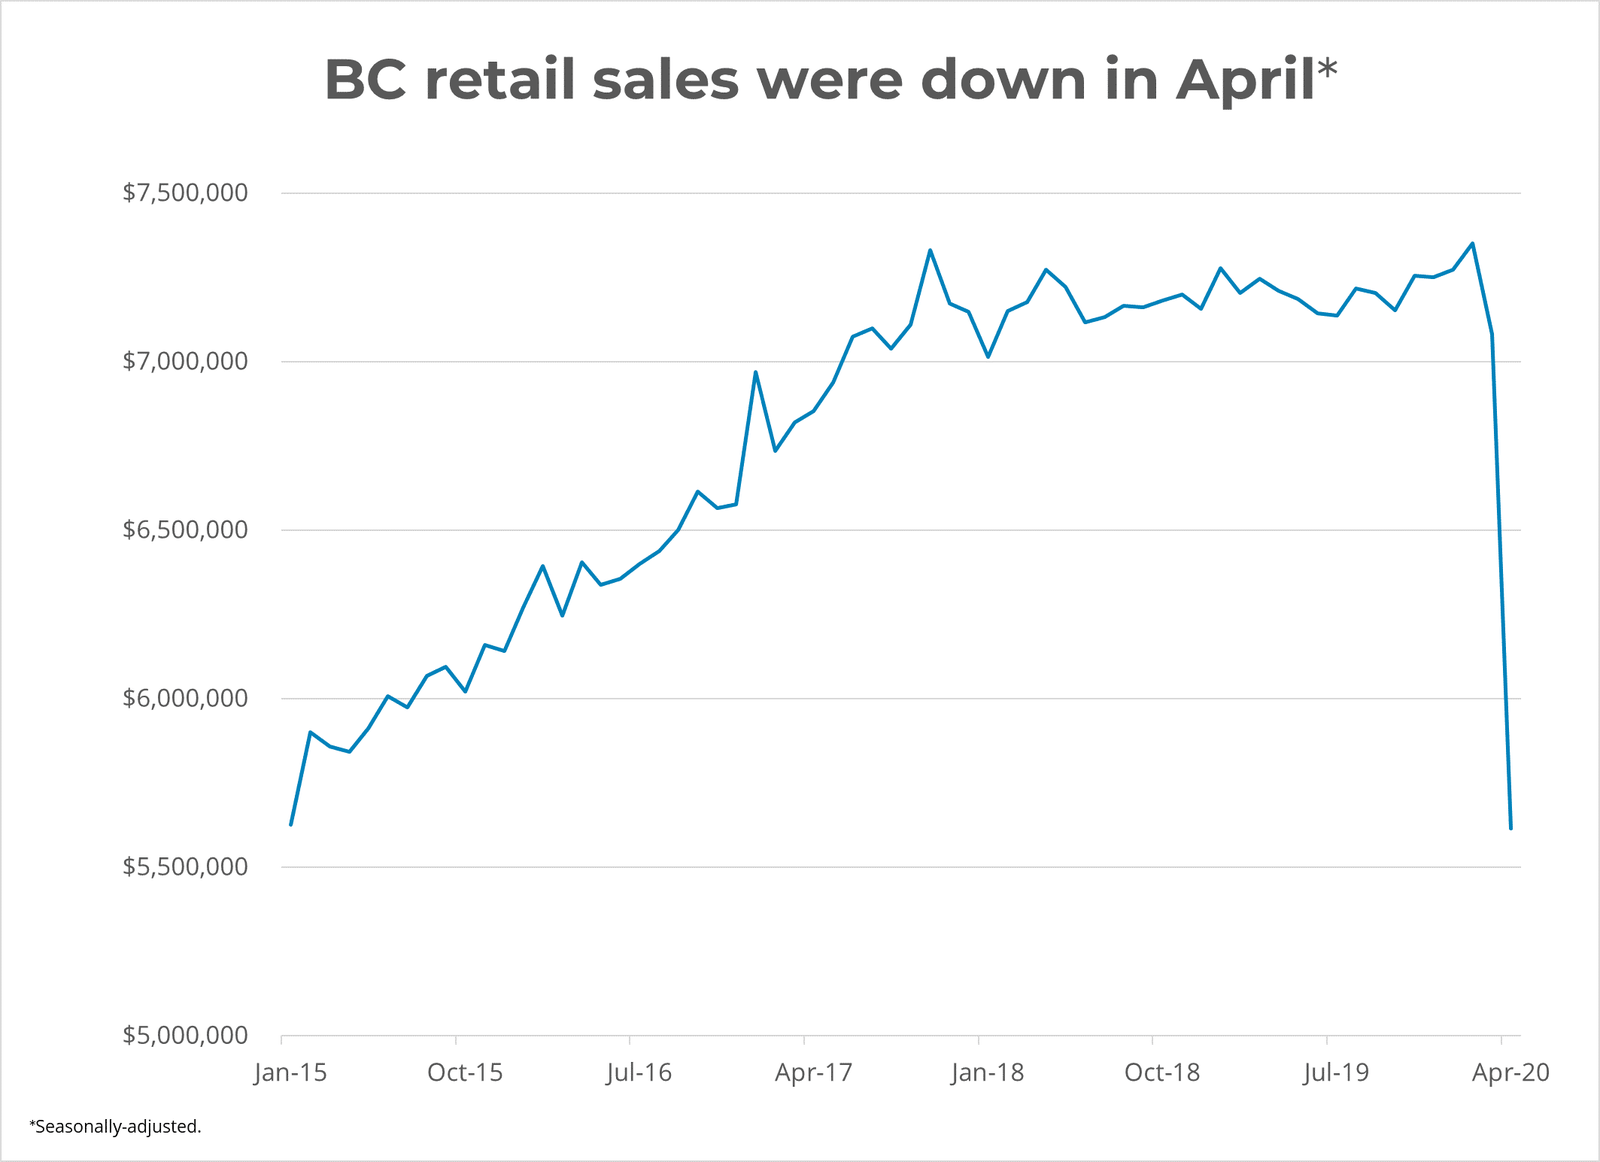 BC Retail Sales - April 2020